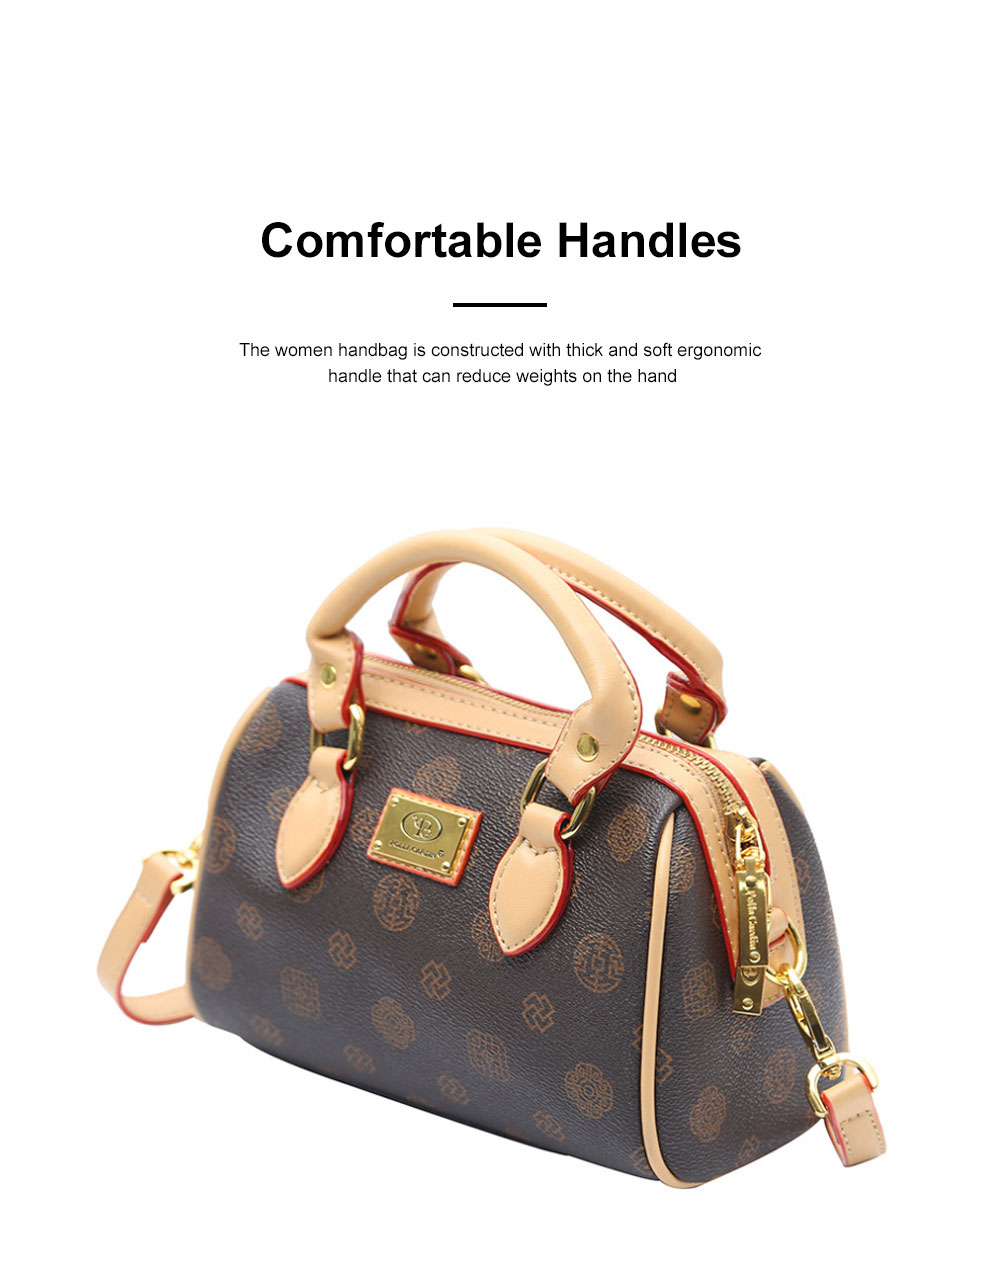 Women Cross-Body Bag with Super Comfortable Handles Textured PU Leather Shoulder Bag 5